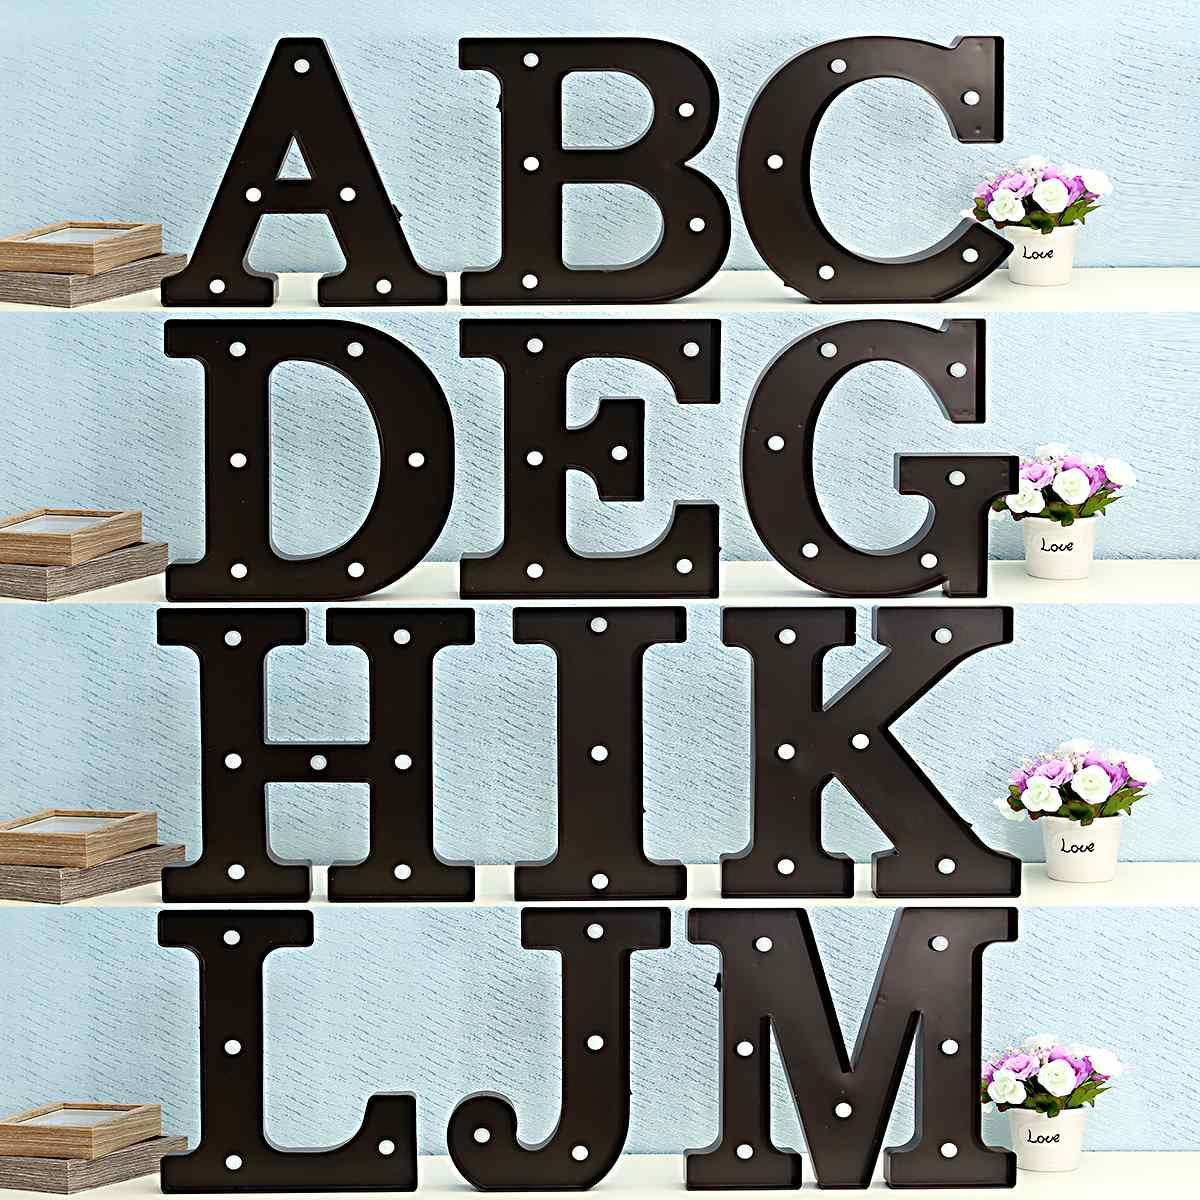 LED Night Light Lamp Kids Marquee Letter Light Vintage Alphabet Circus Style Light Up Christmas Decor Lamp White 12 Inch best price led night light lamp kids marquee letter light vintage alphabet circus style light up christmas lamp white 12inch